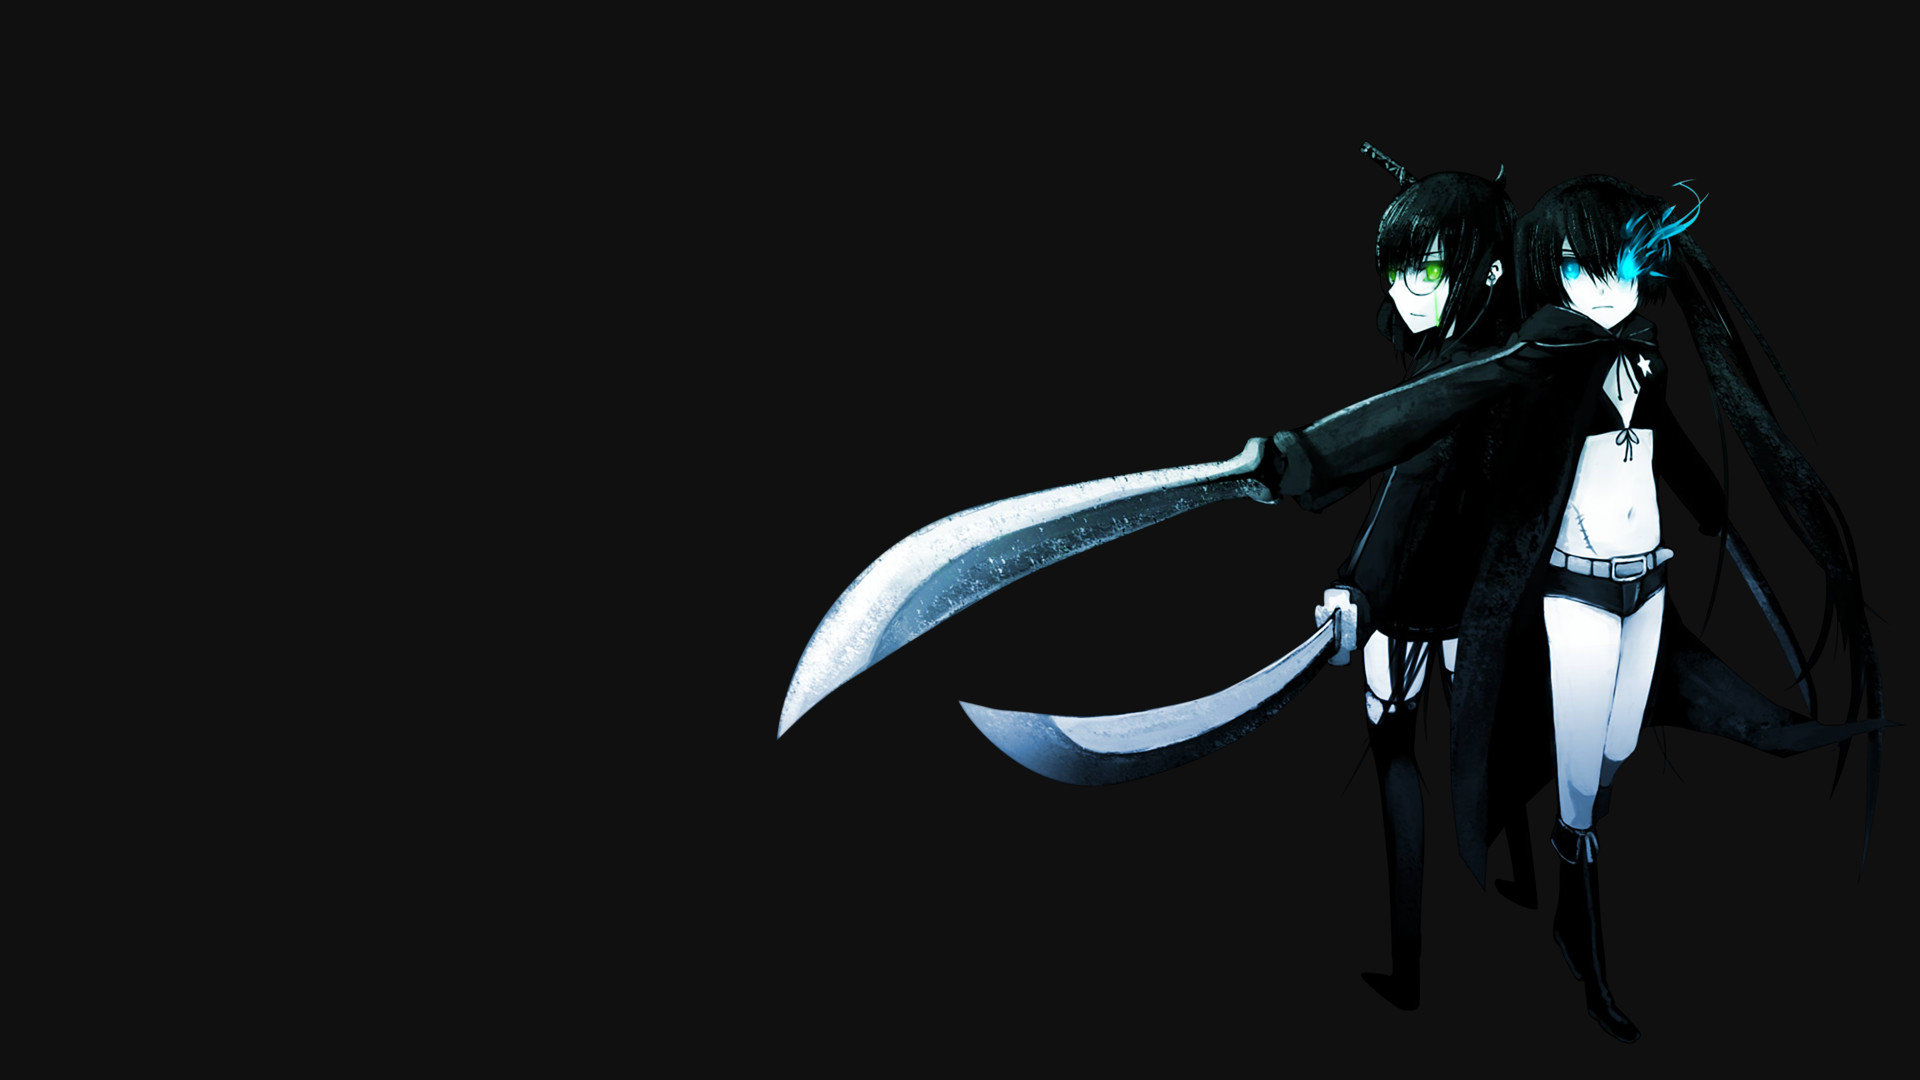 Download full hd 1920x1080 Dead Master (Black Rock Shooter) PC background ID:453910 for free